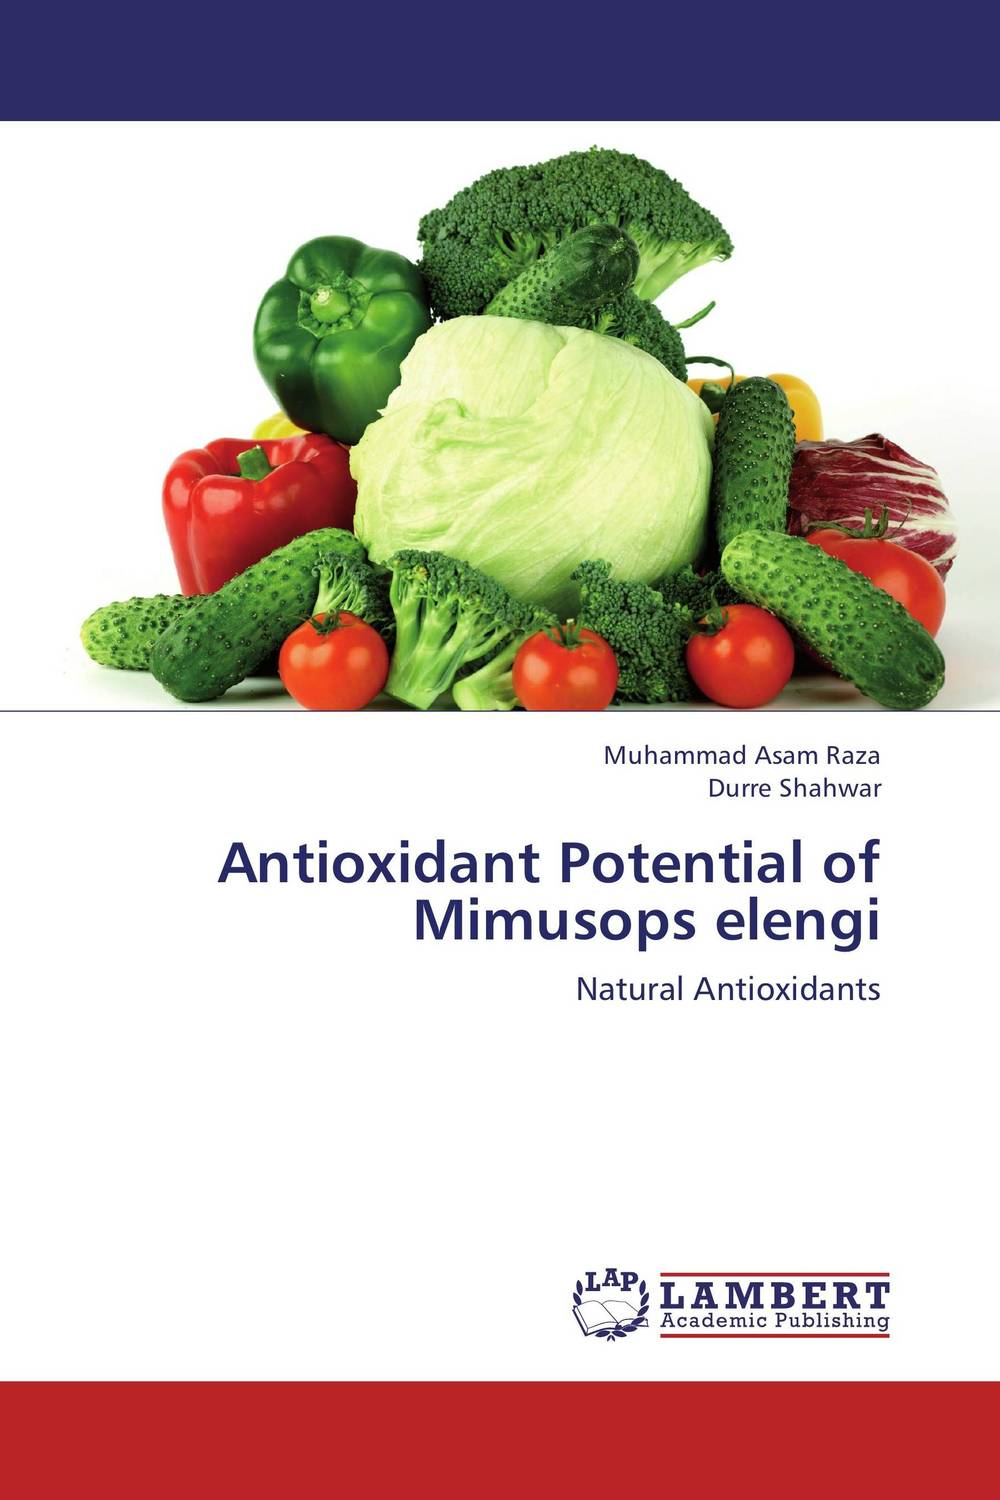 Antioxidant Potential of Mimusops elengi pharmacognostic study of nigerian herbal drugs of importance